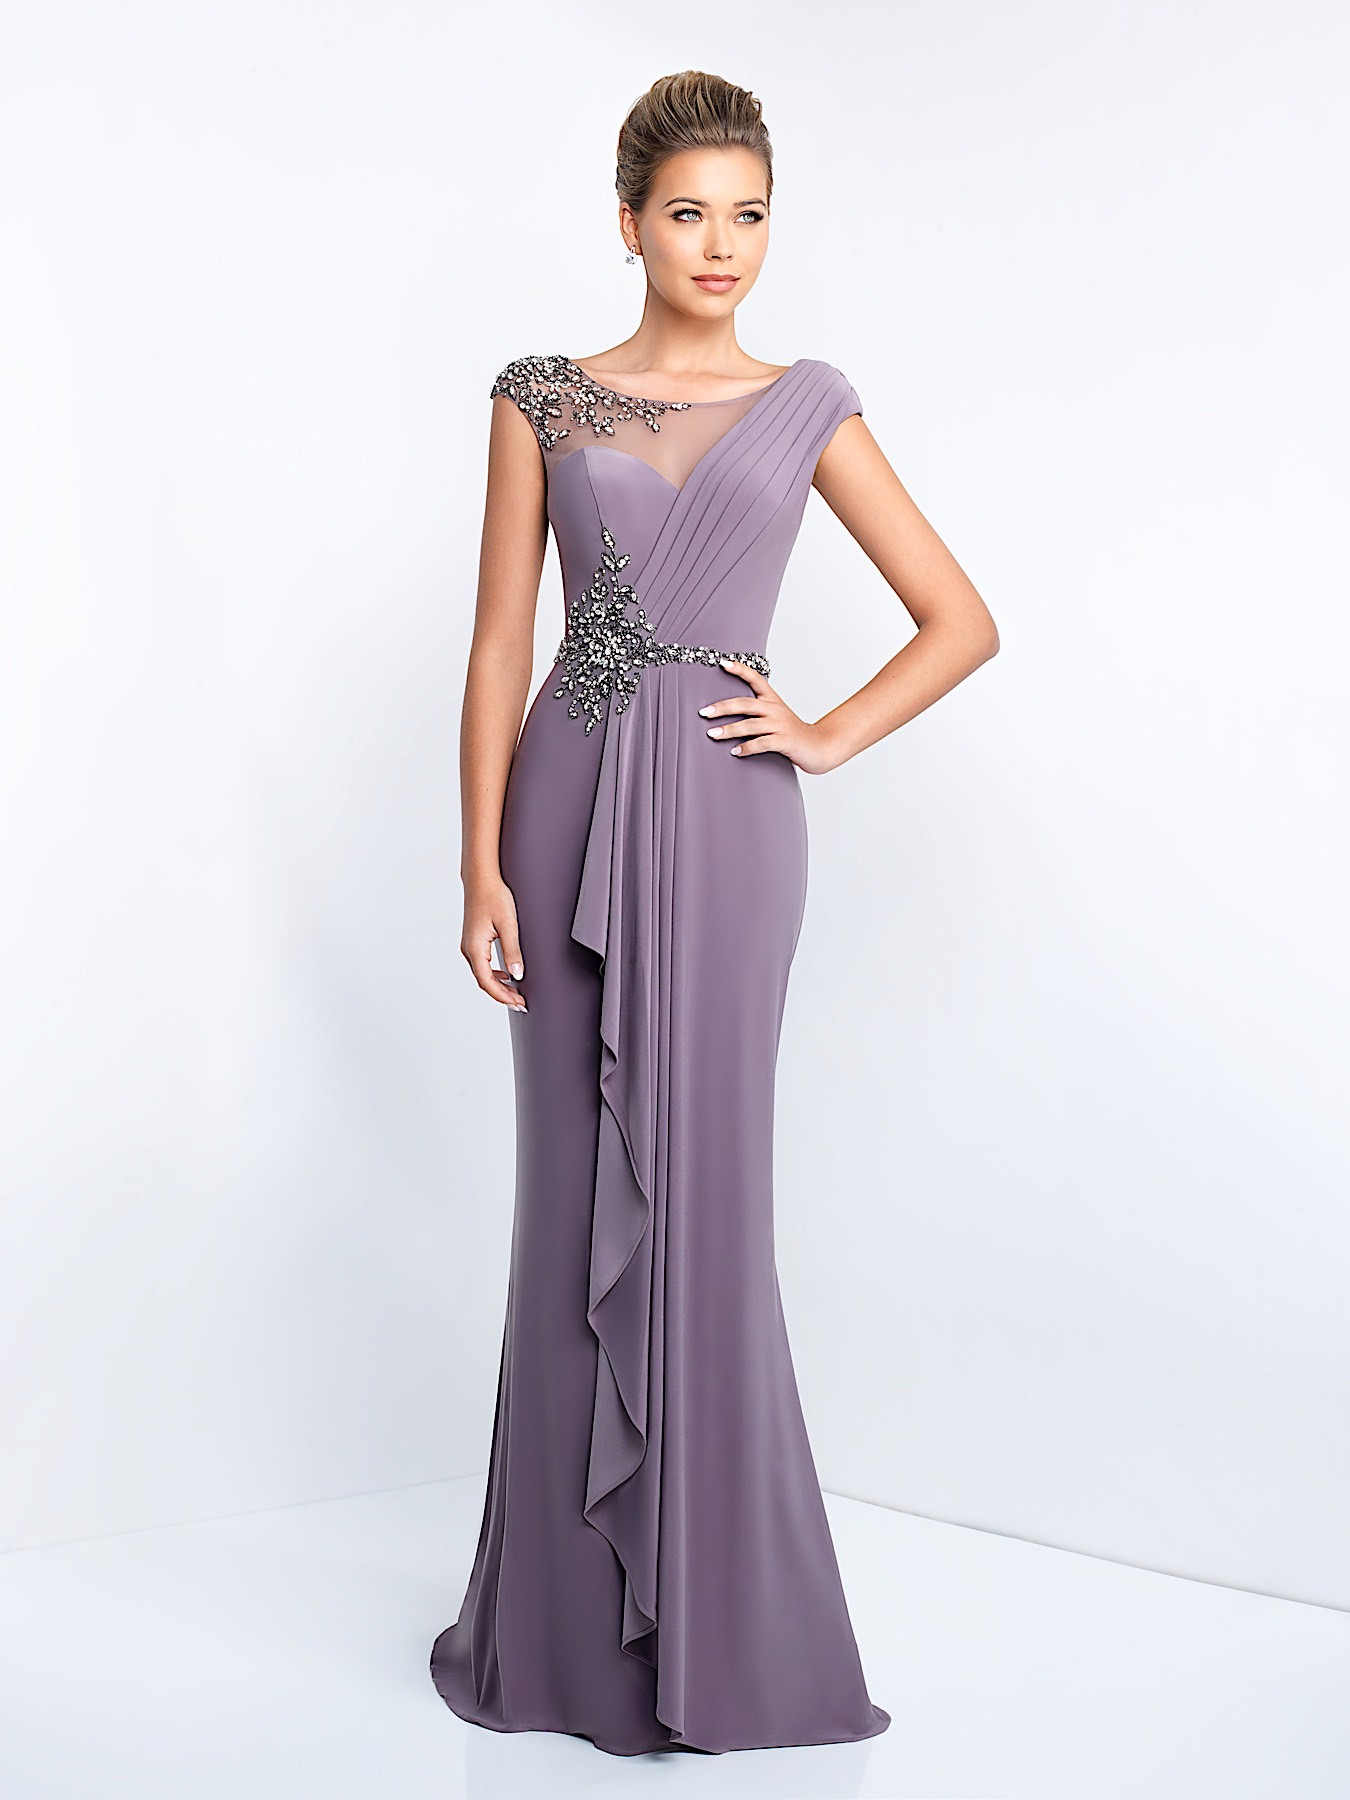 Formal Dresses Sale in Gold Coast - The Bridal Company